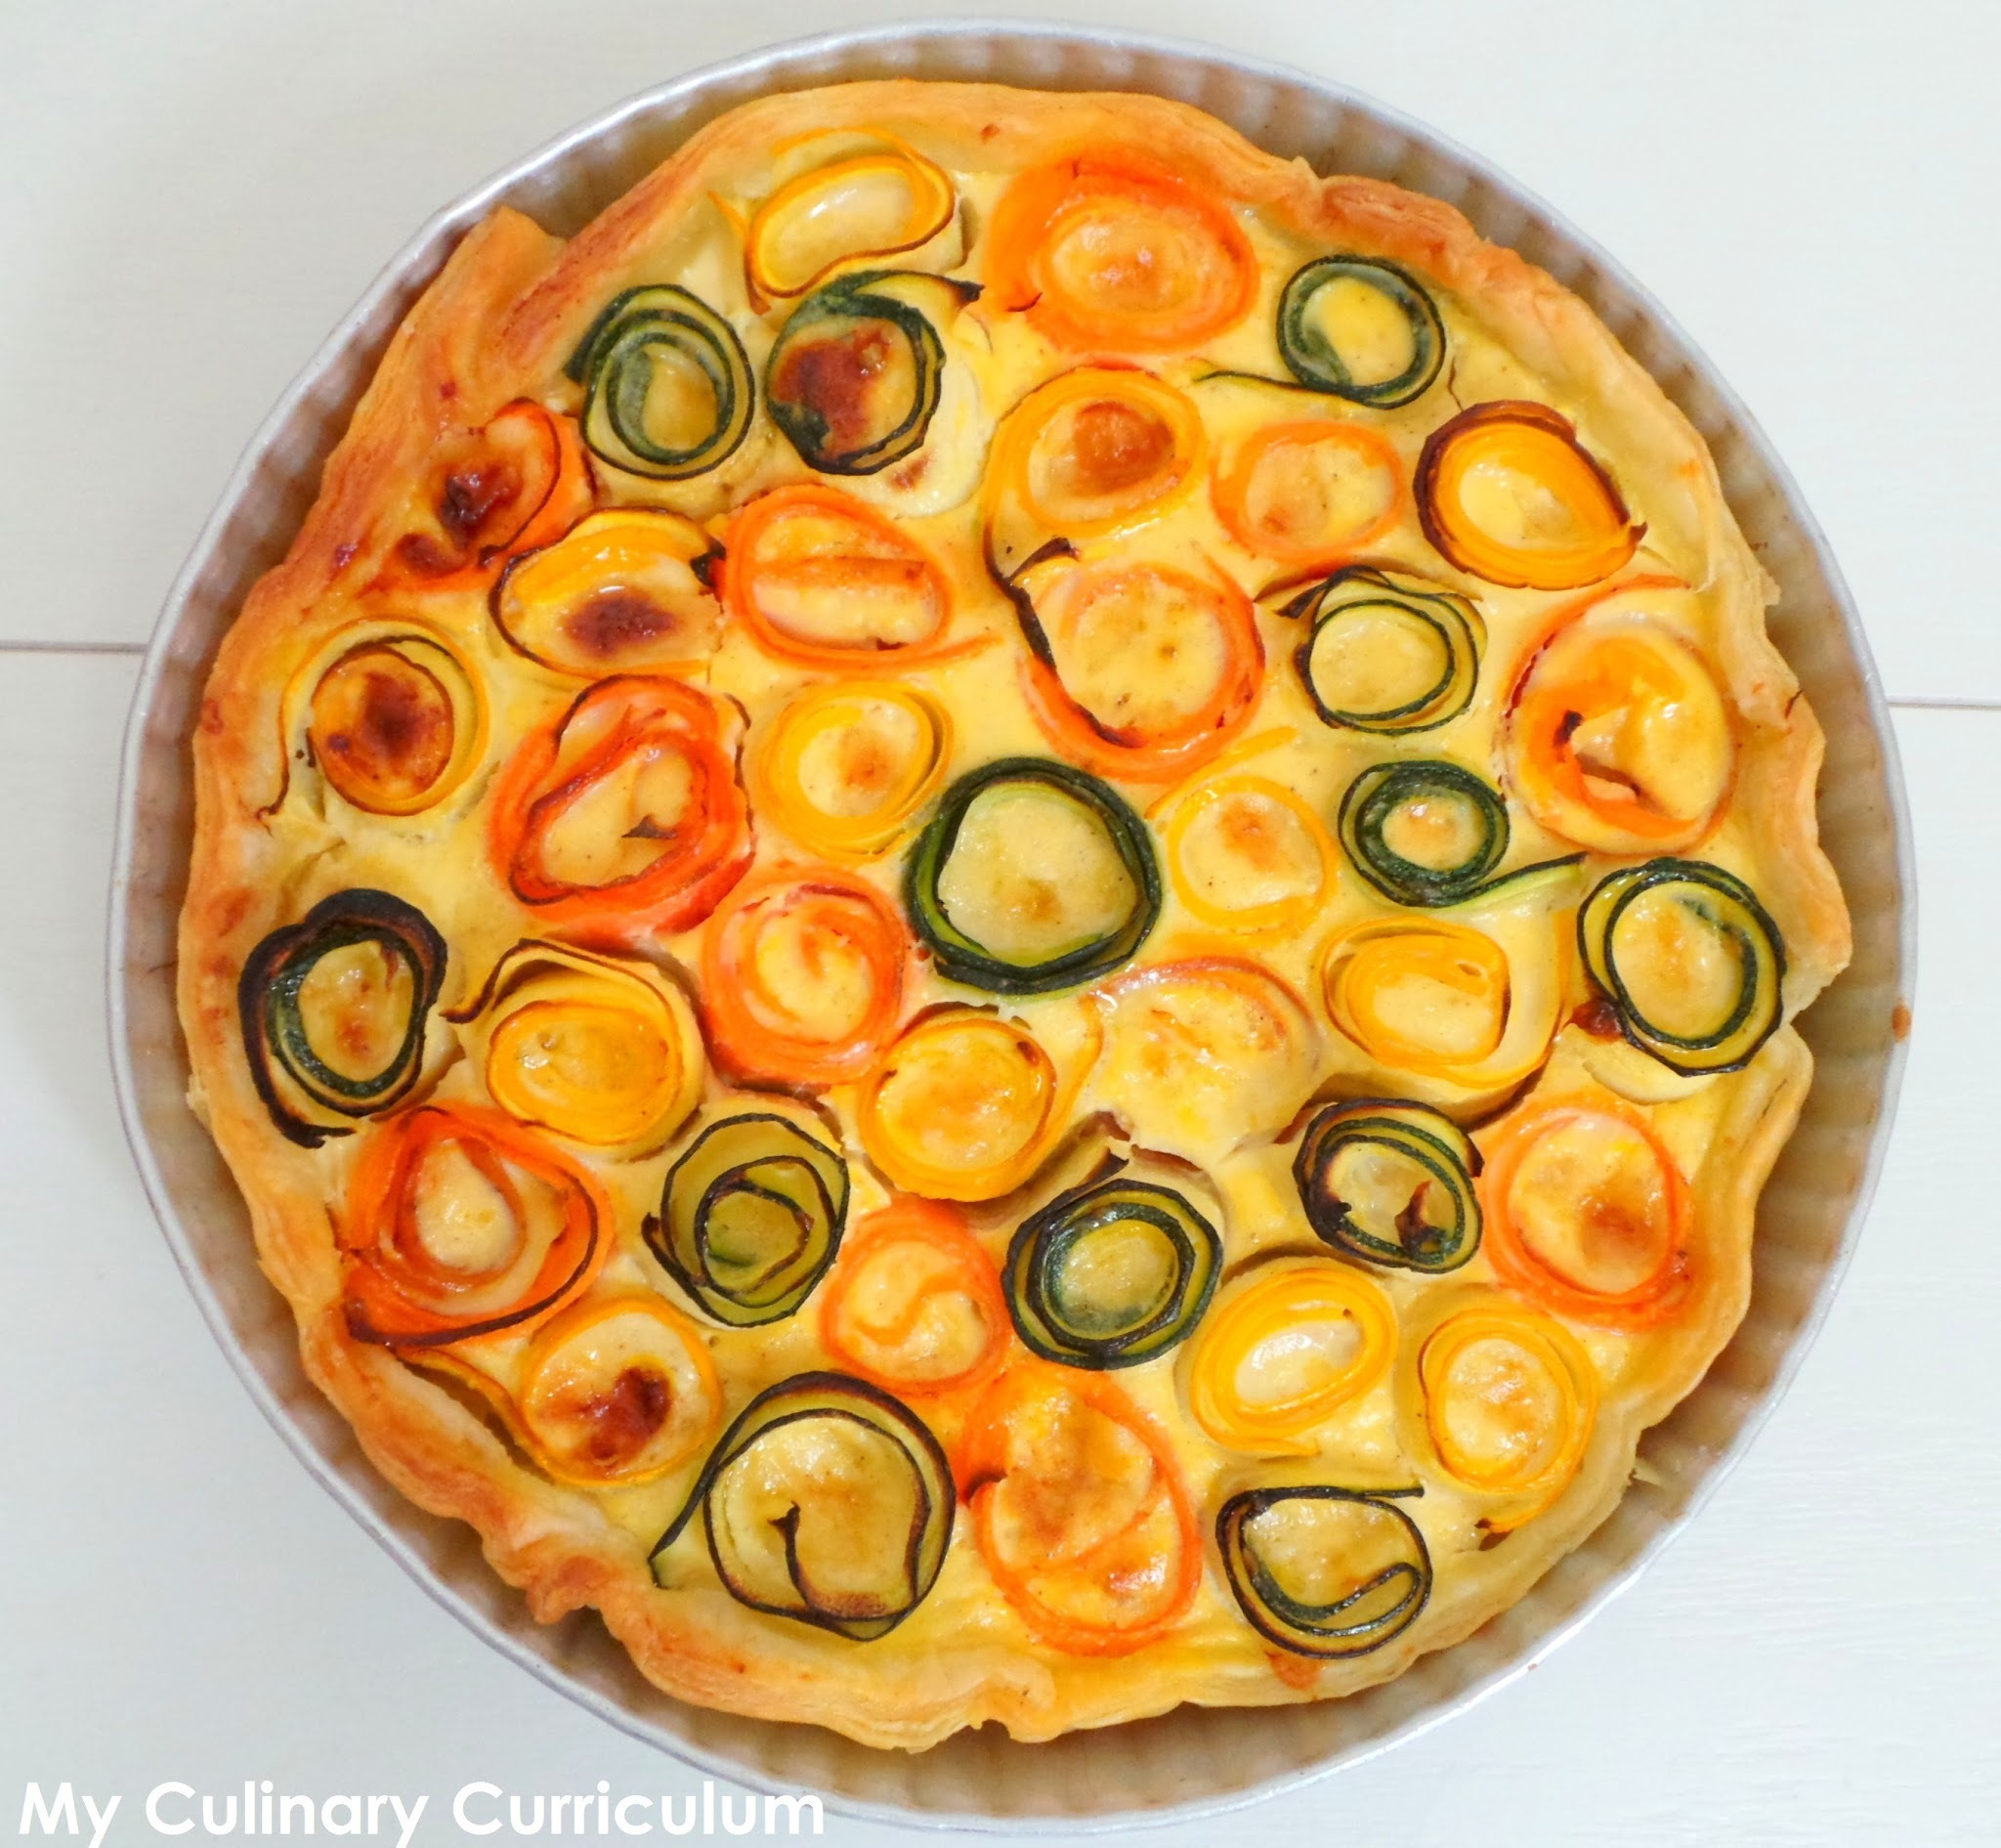 Tarte rose de légumes (carottes et courgettes) à la moutarde et au vieux cheddar (Rose vegetable pie  (carrots and zucchini) with mustard and old cheddar)